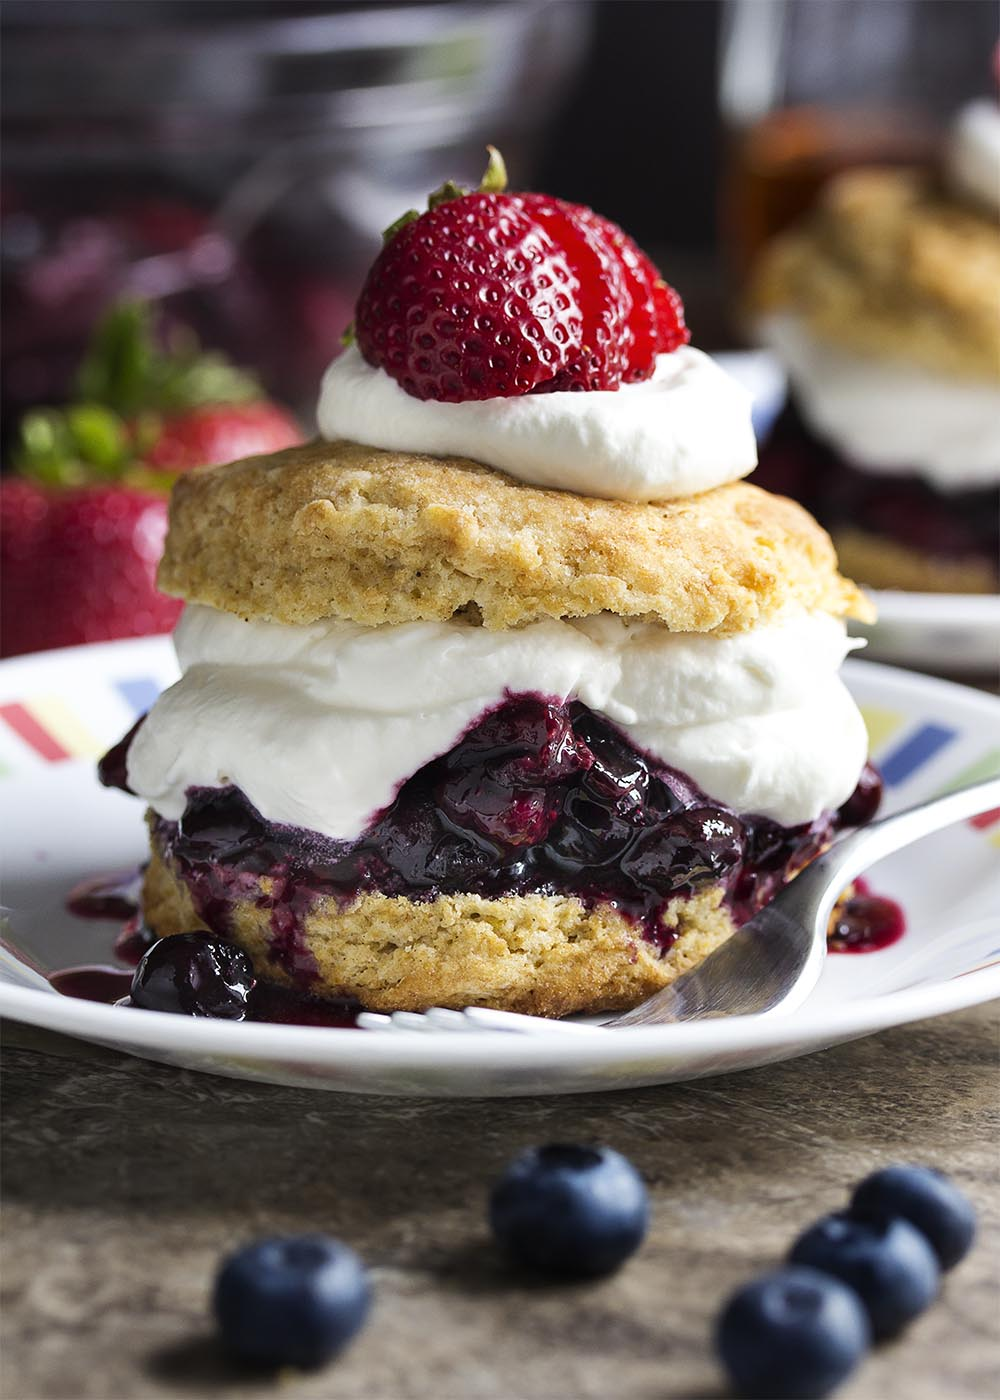 Strawberry shortcake gets a sophisticated makeover! Just in time for summer. Intensely flavored roasted strawberries and blueberries are spooned onto cinnamon spiced biscuits and topped with bourbon whipped cream in this berry shortcake. | justalittlebitofbacon.com